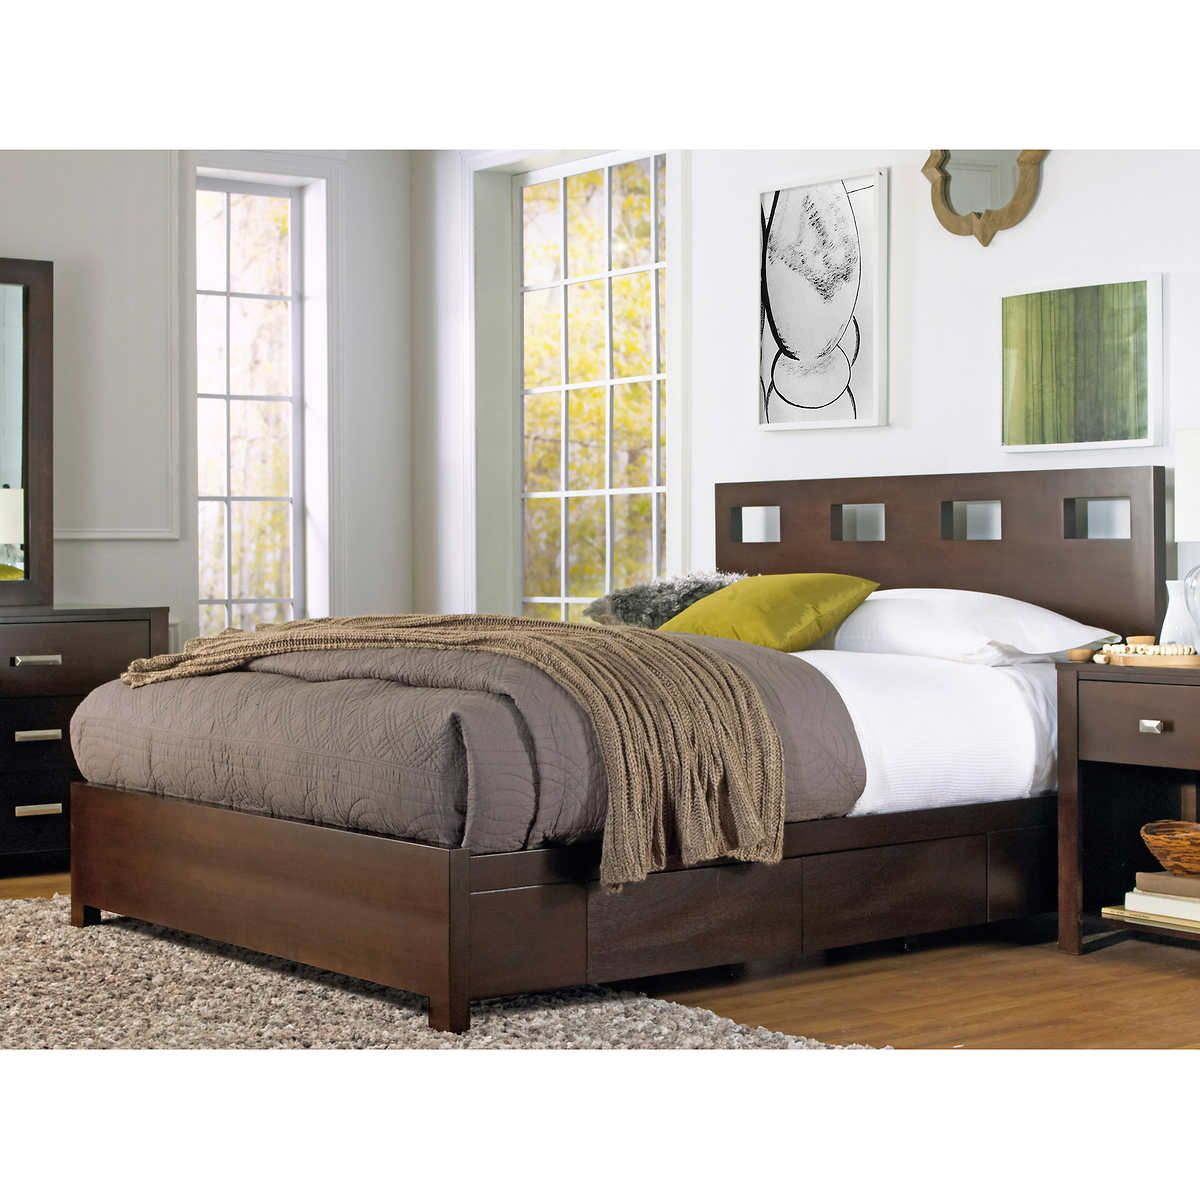 Paxton King Storage Bed King storage bed, Storage bed